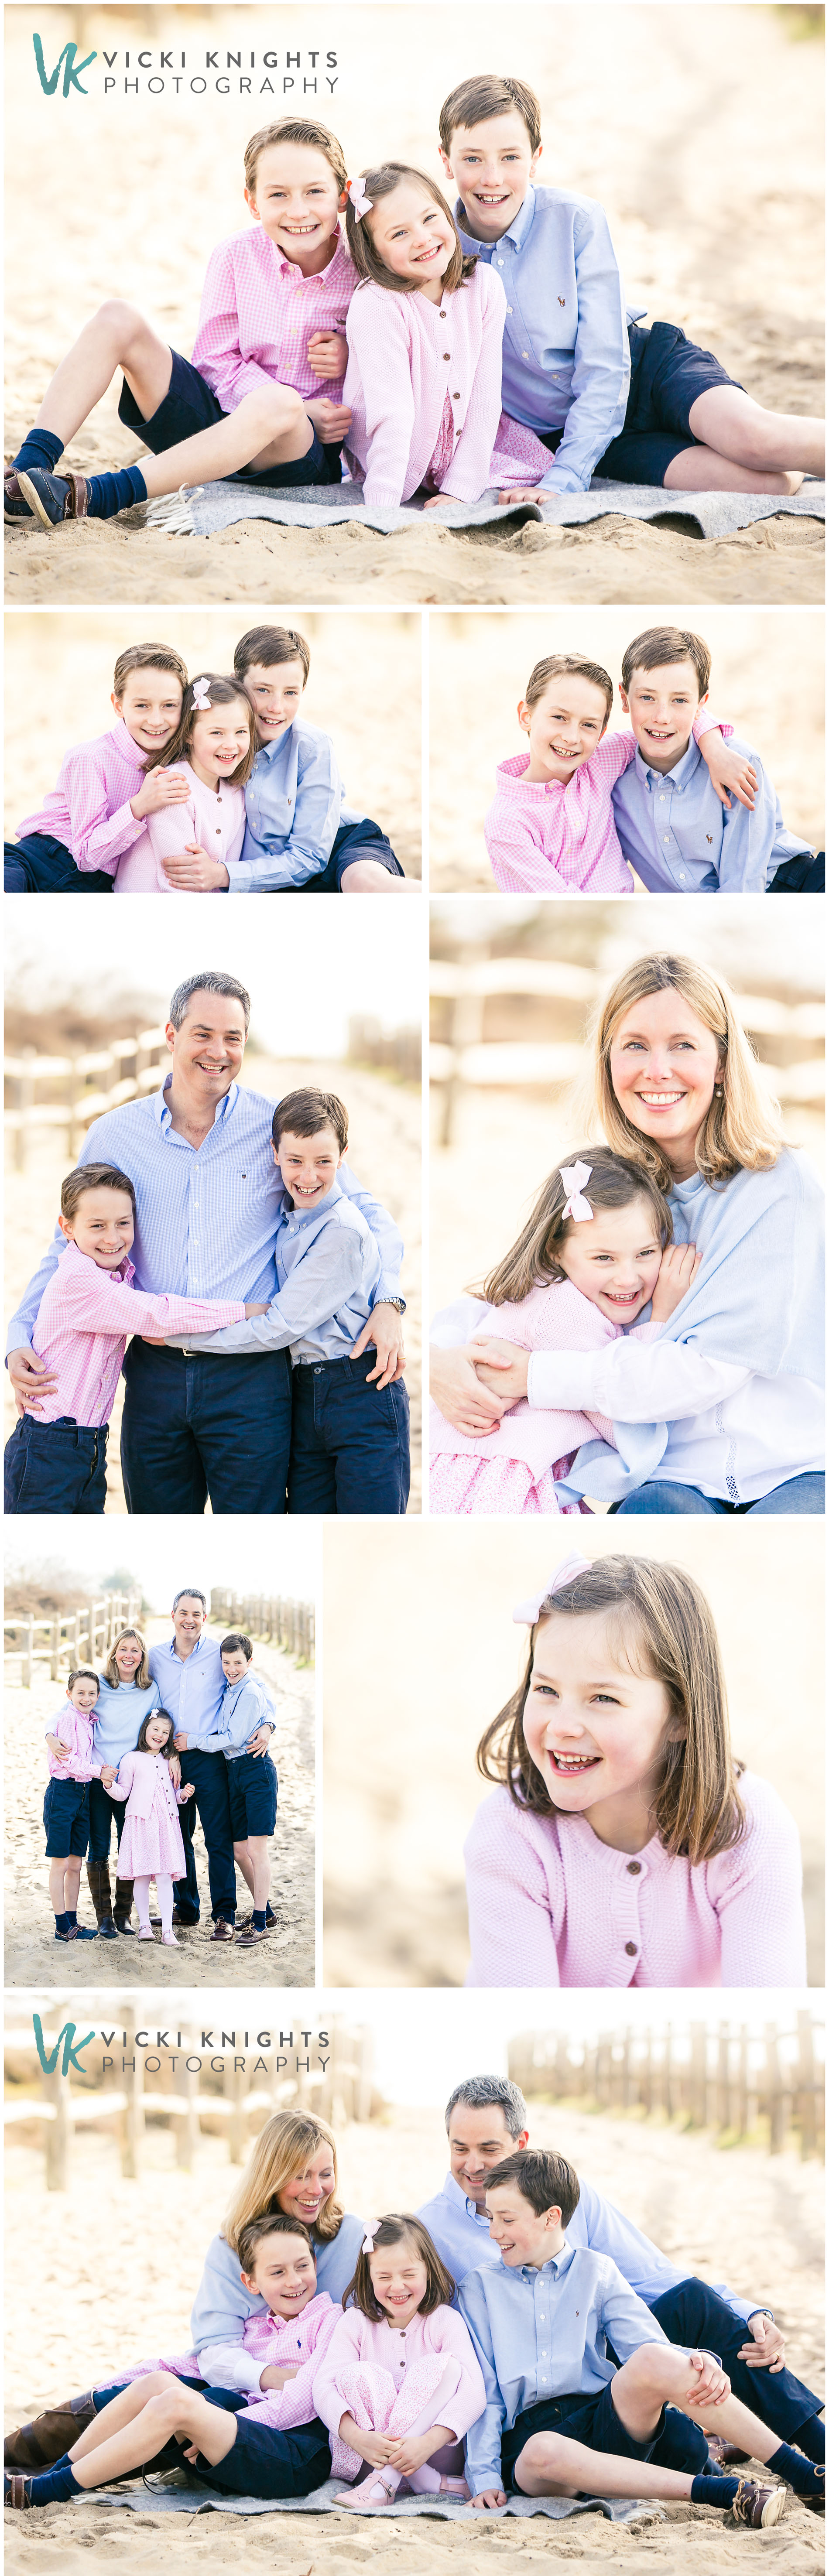 farnham-family-photographer-5